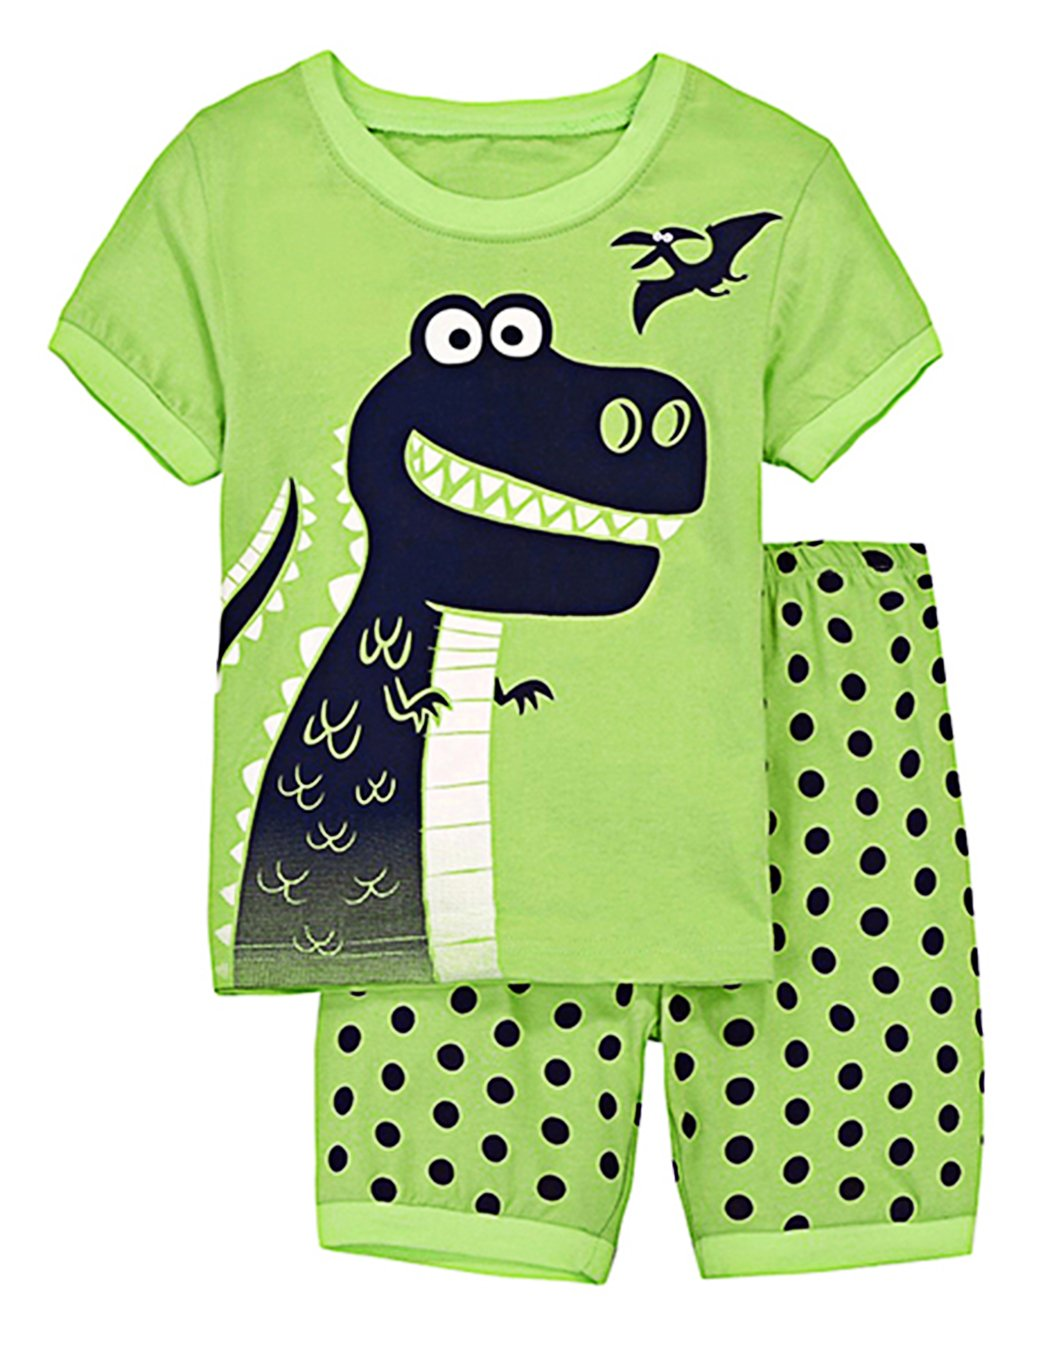 Tecrok Boys Summer Outfits Dinosaur Toddler Clothes Set Top Shirt + Shorts For Age 2-8 Years, Green, 4